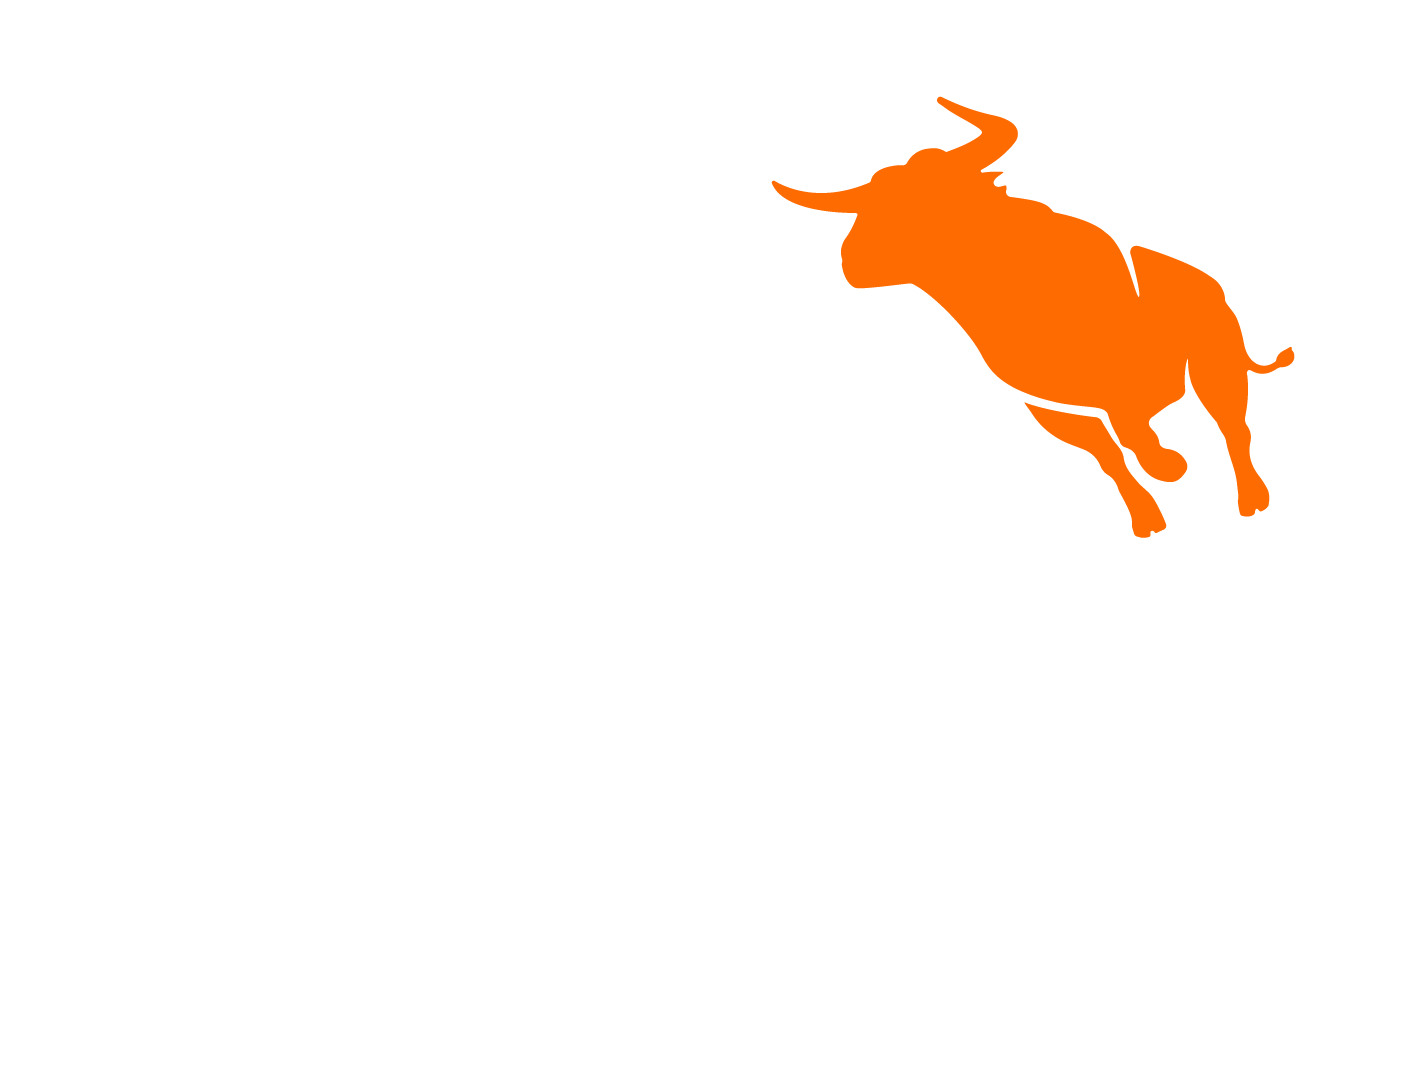 Bullhorn Consulting Services Logo